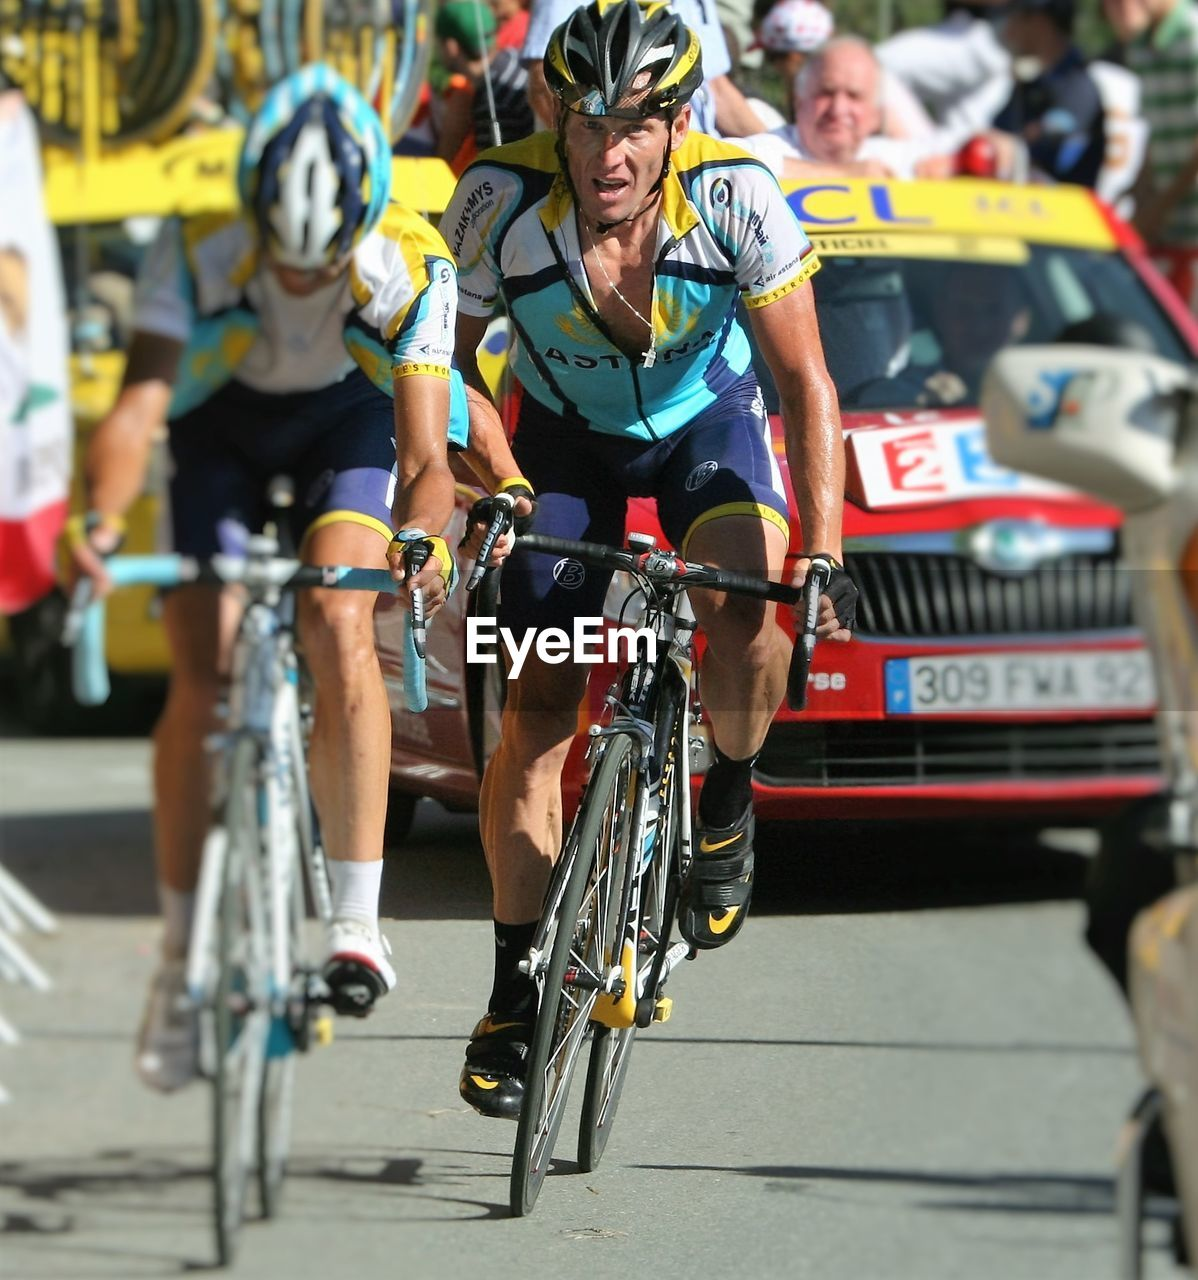 bicycle, mode of transport, men, land vehicle, real people, sports race, day, outdoors, racing bicycle, large group of people, sport, cycling helmet, sportsman